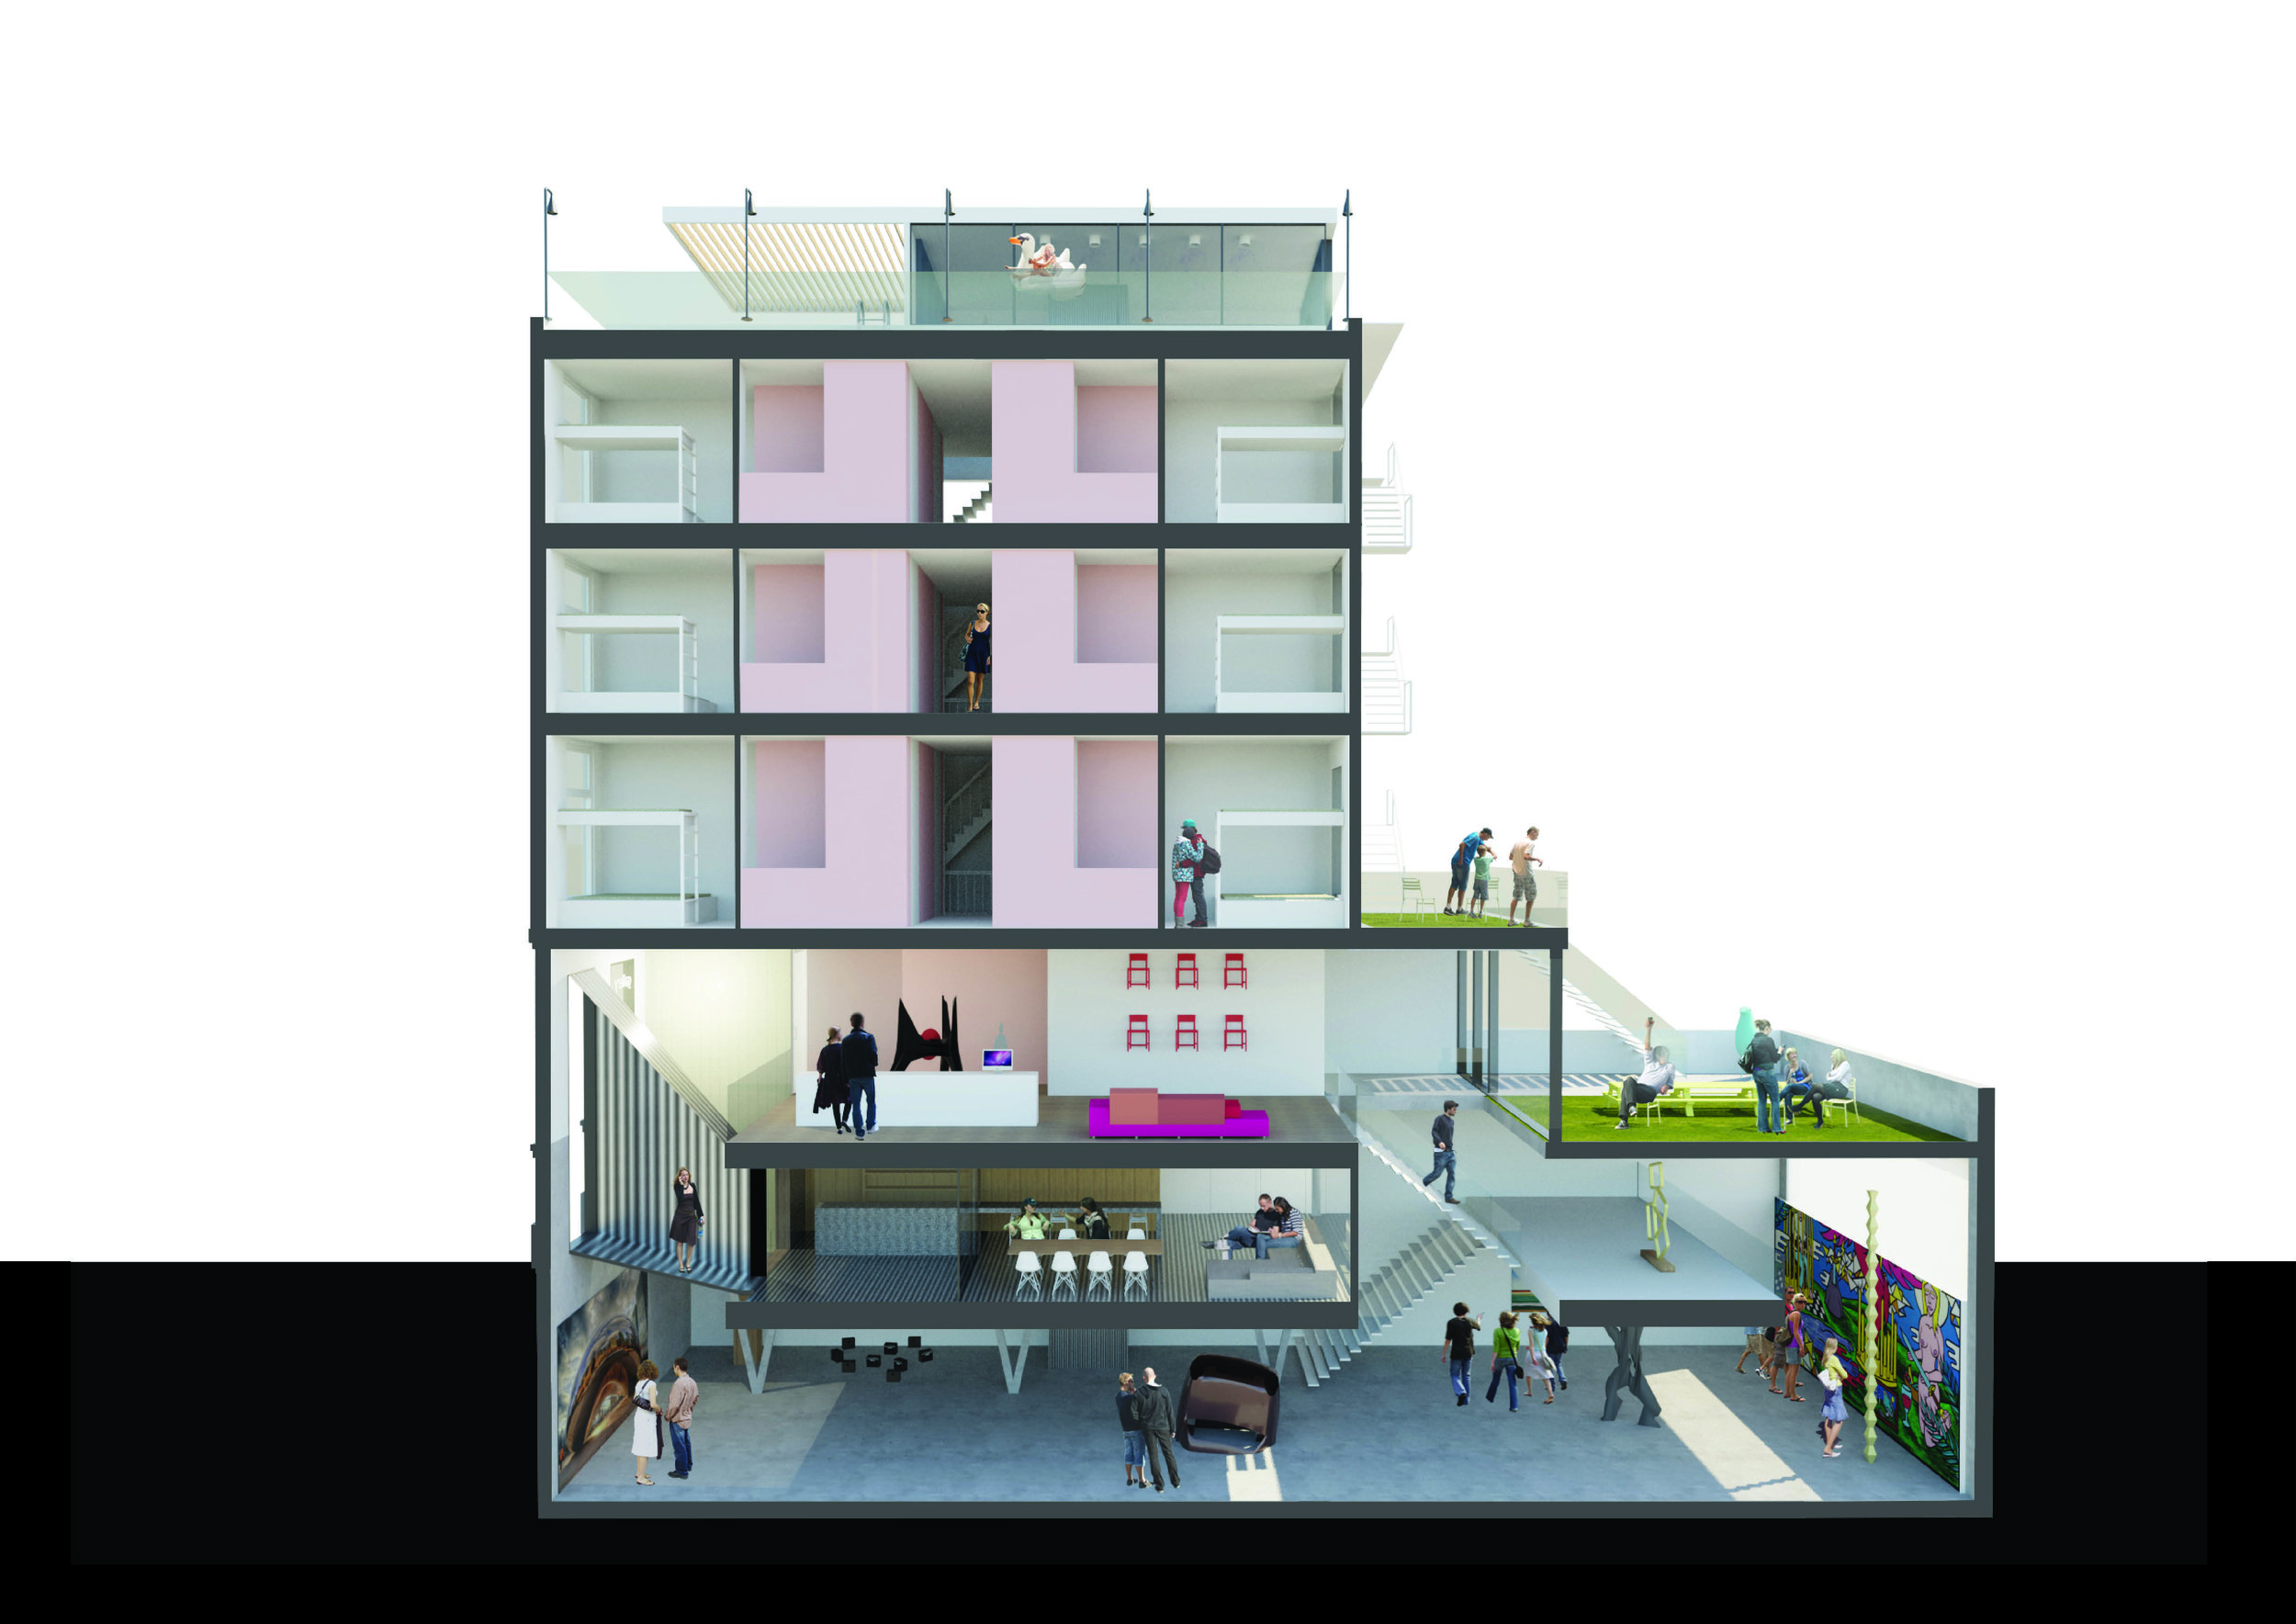 city hotel with art gallery, coffee shop, rooftop bar and swimming pool